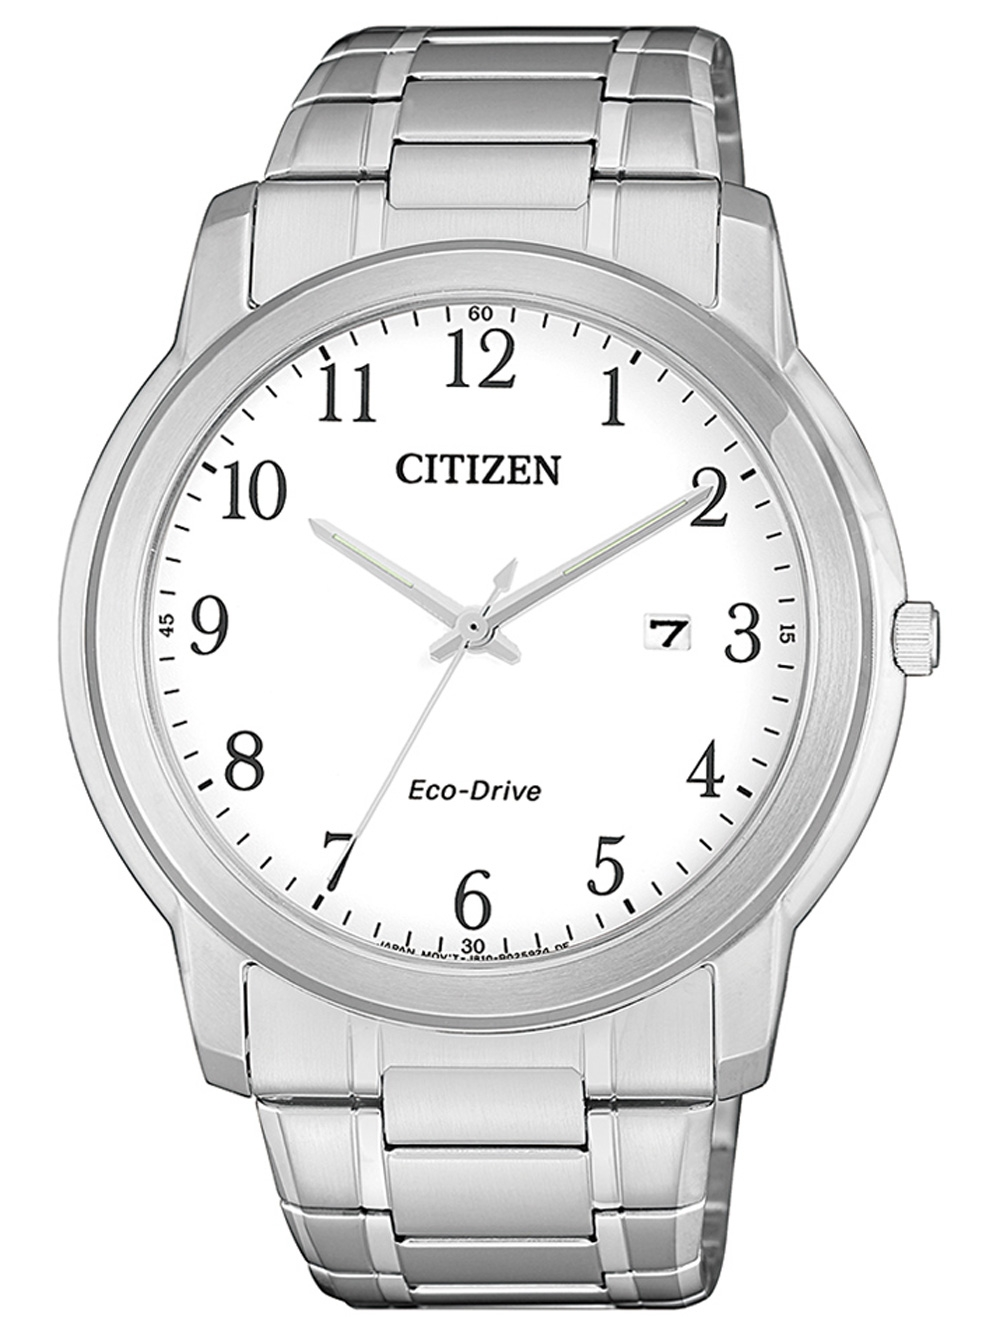 AW1211-80A Eco-Drive Sports Herren 41mm 5ATM